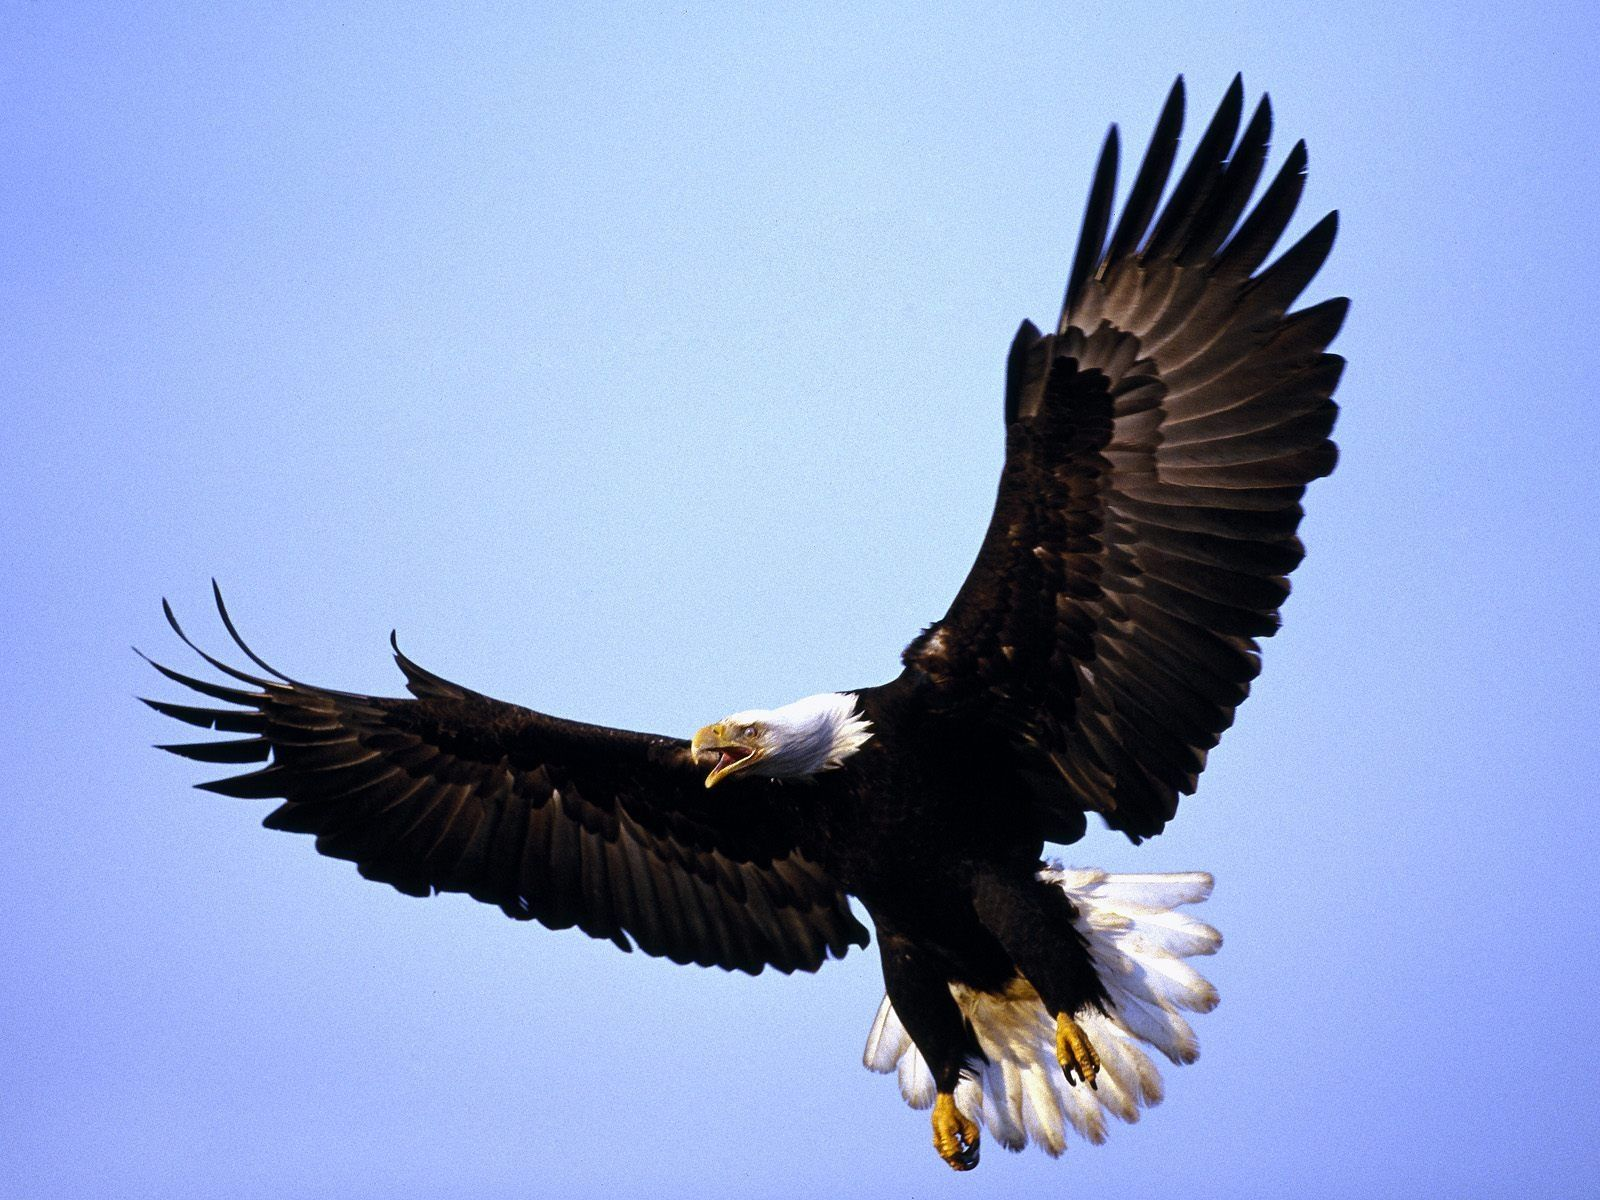 Eagle Wallpapers Download Eagle HD Wallpapers for GuoGuiyan 1600x1200